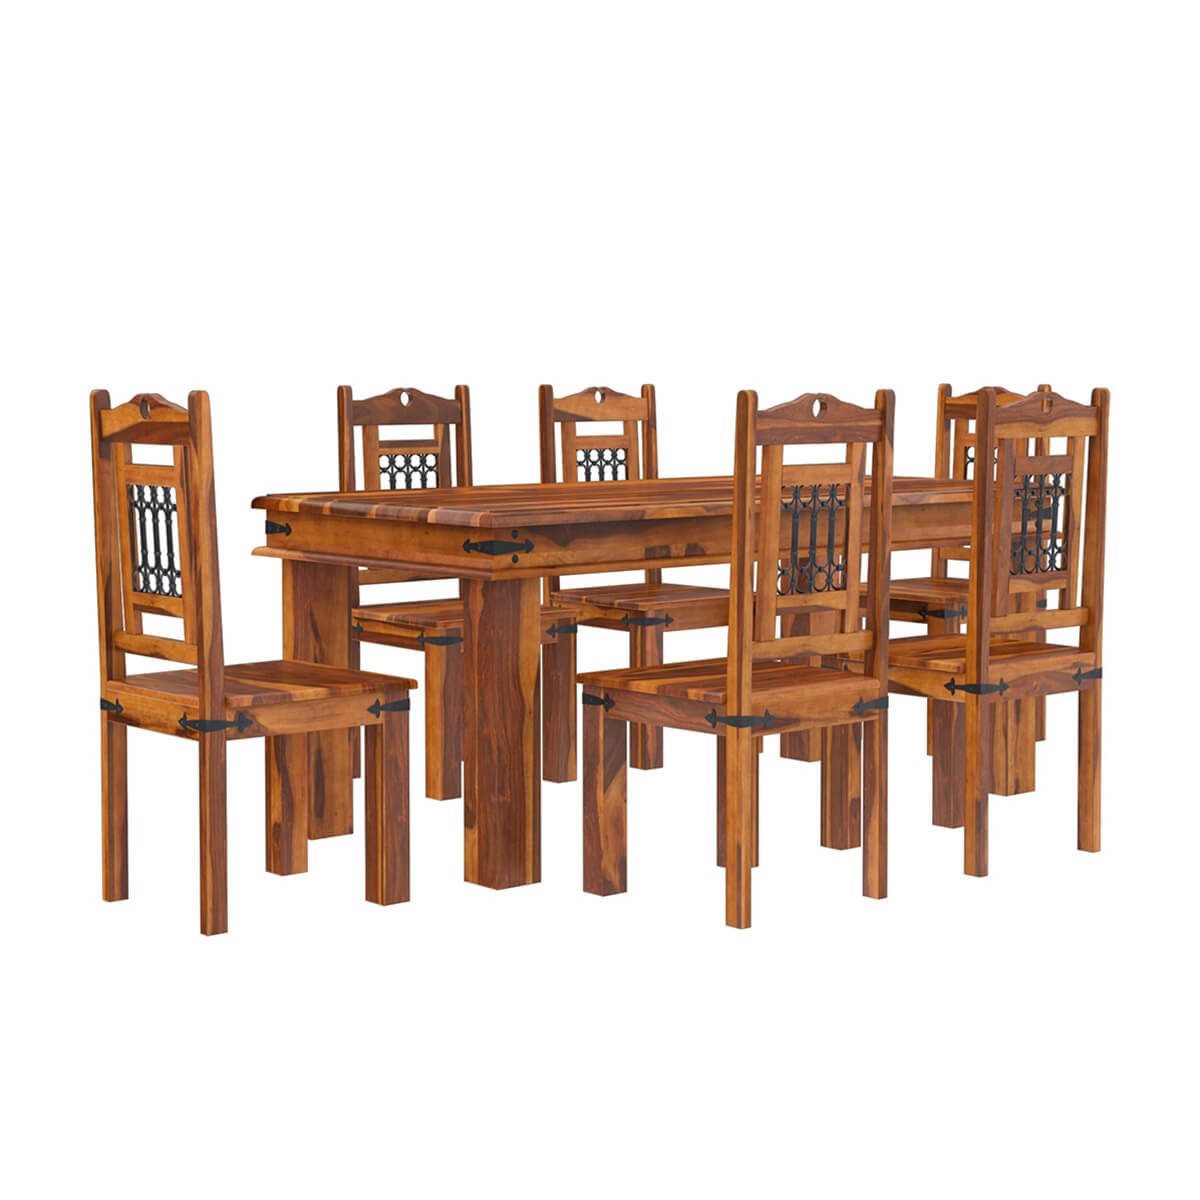 Philadelphia Classic 7pc Transitional Dining Room Table  : 20291 from www.sierralivingconcepts.com size 1200 x 1200 jpeg 400kB